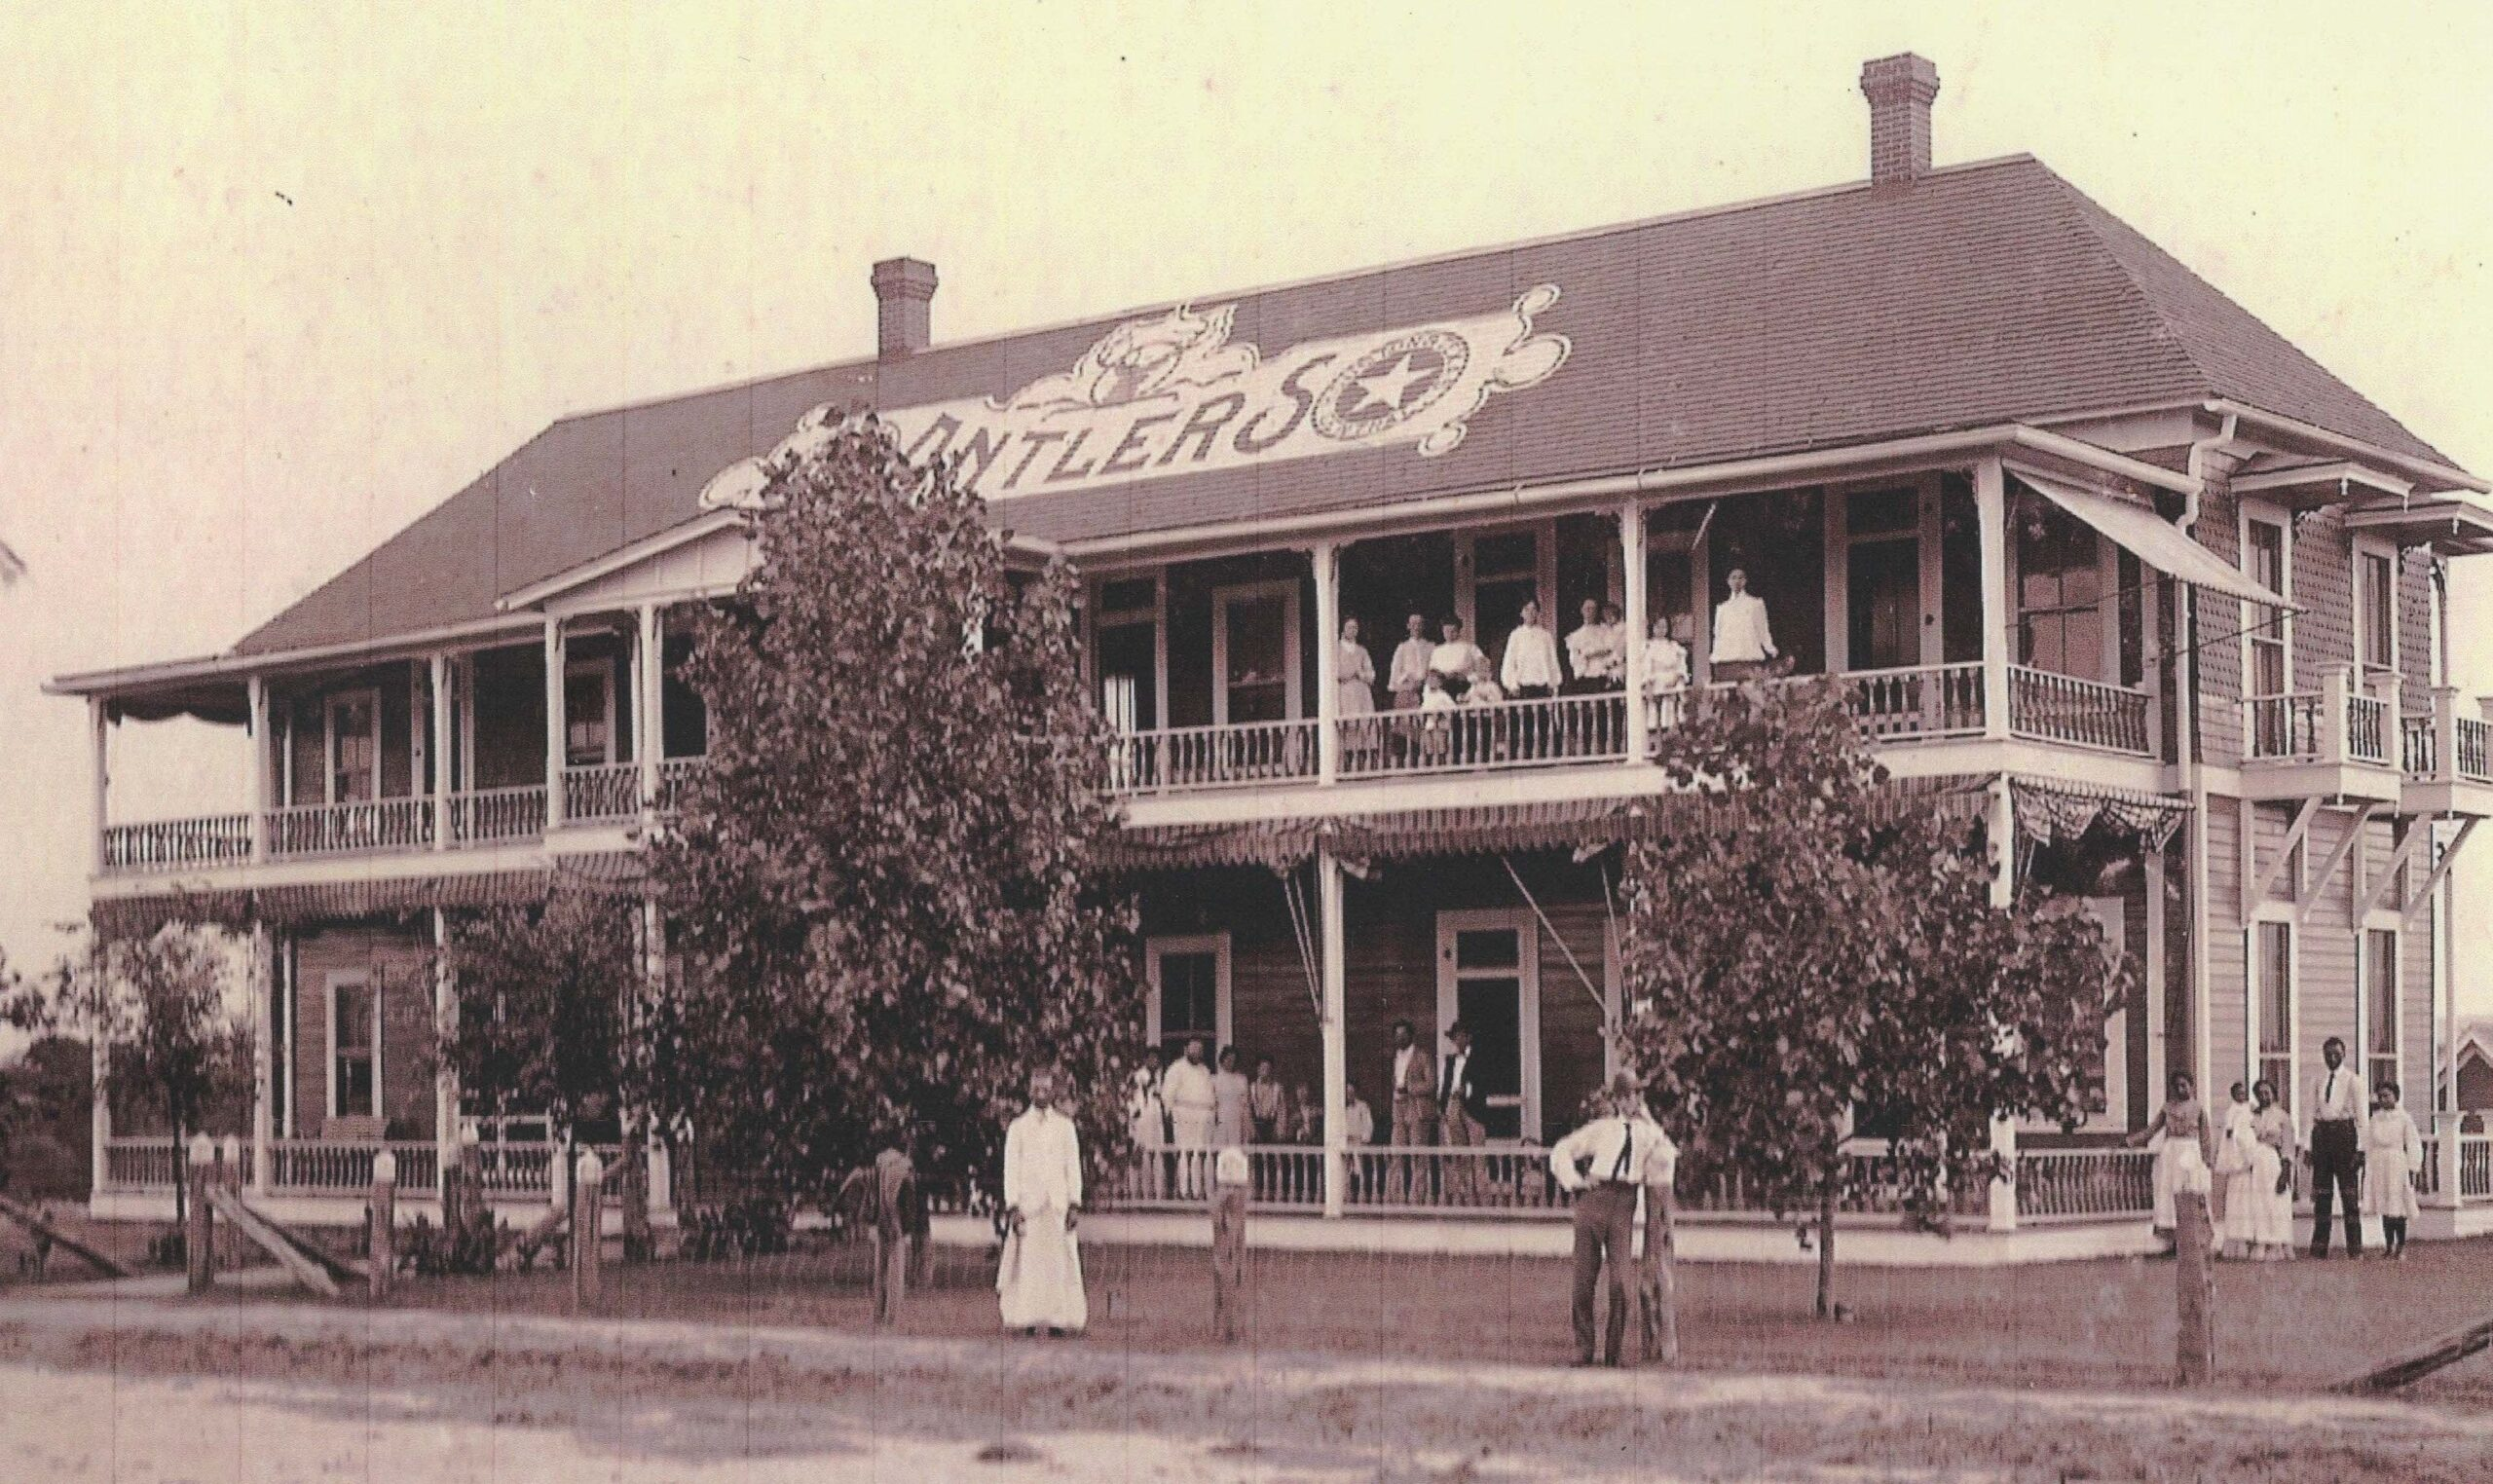 Picture of the old Antler's Inn in Kingsland, TX